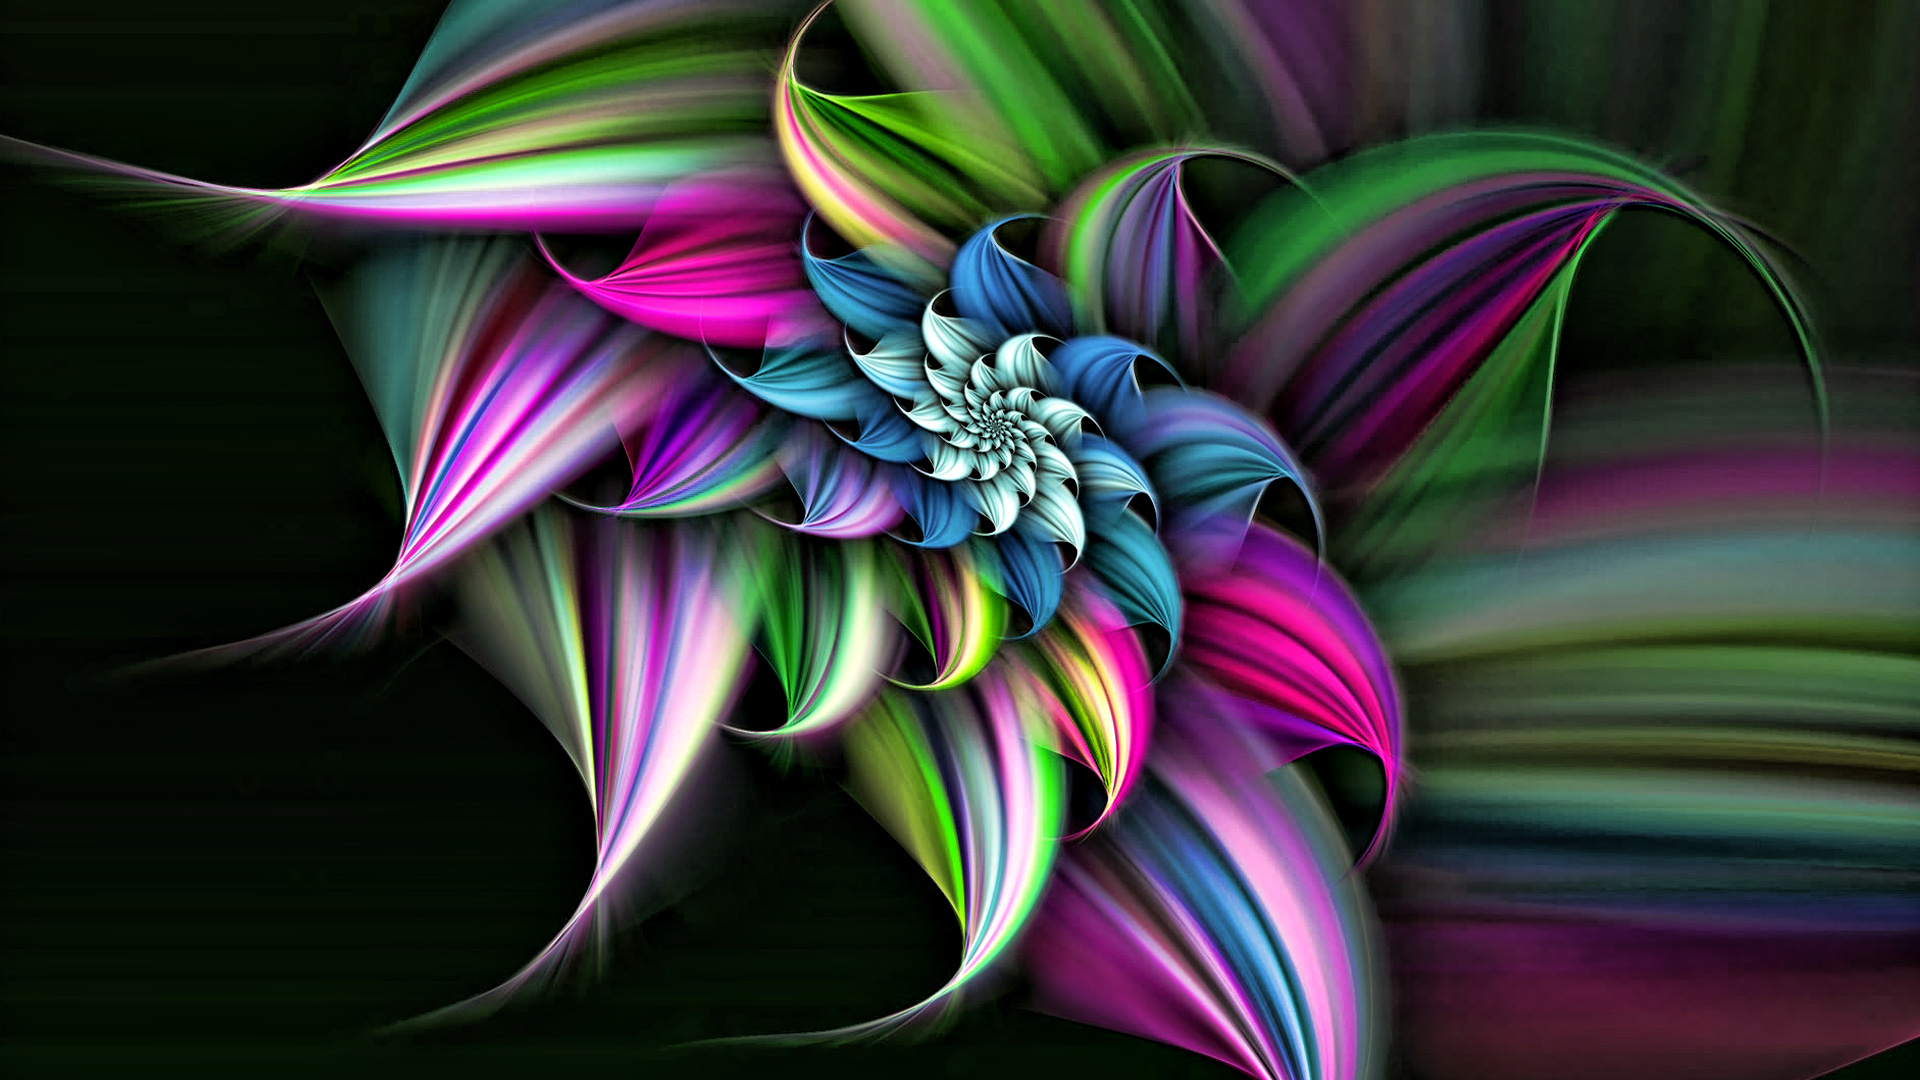 Free Download 3d Flower Hd Wallpapers 1920x1080 For Your